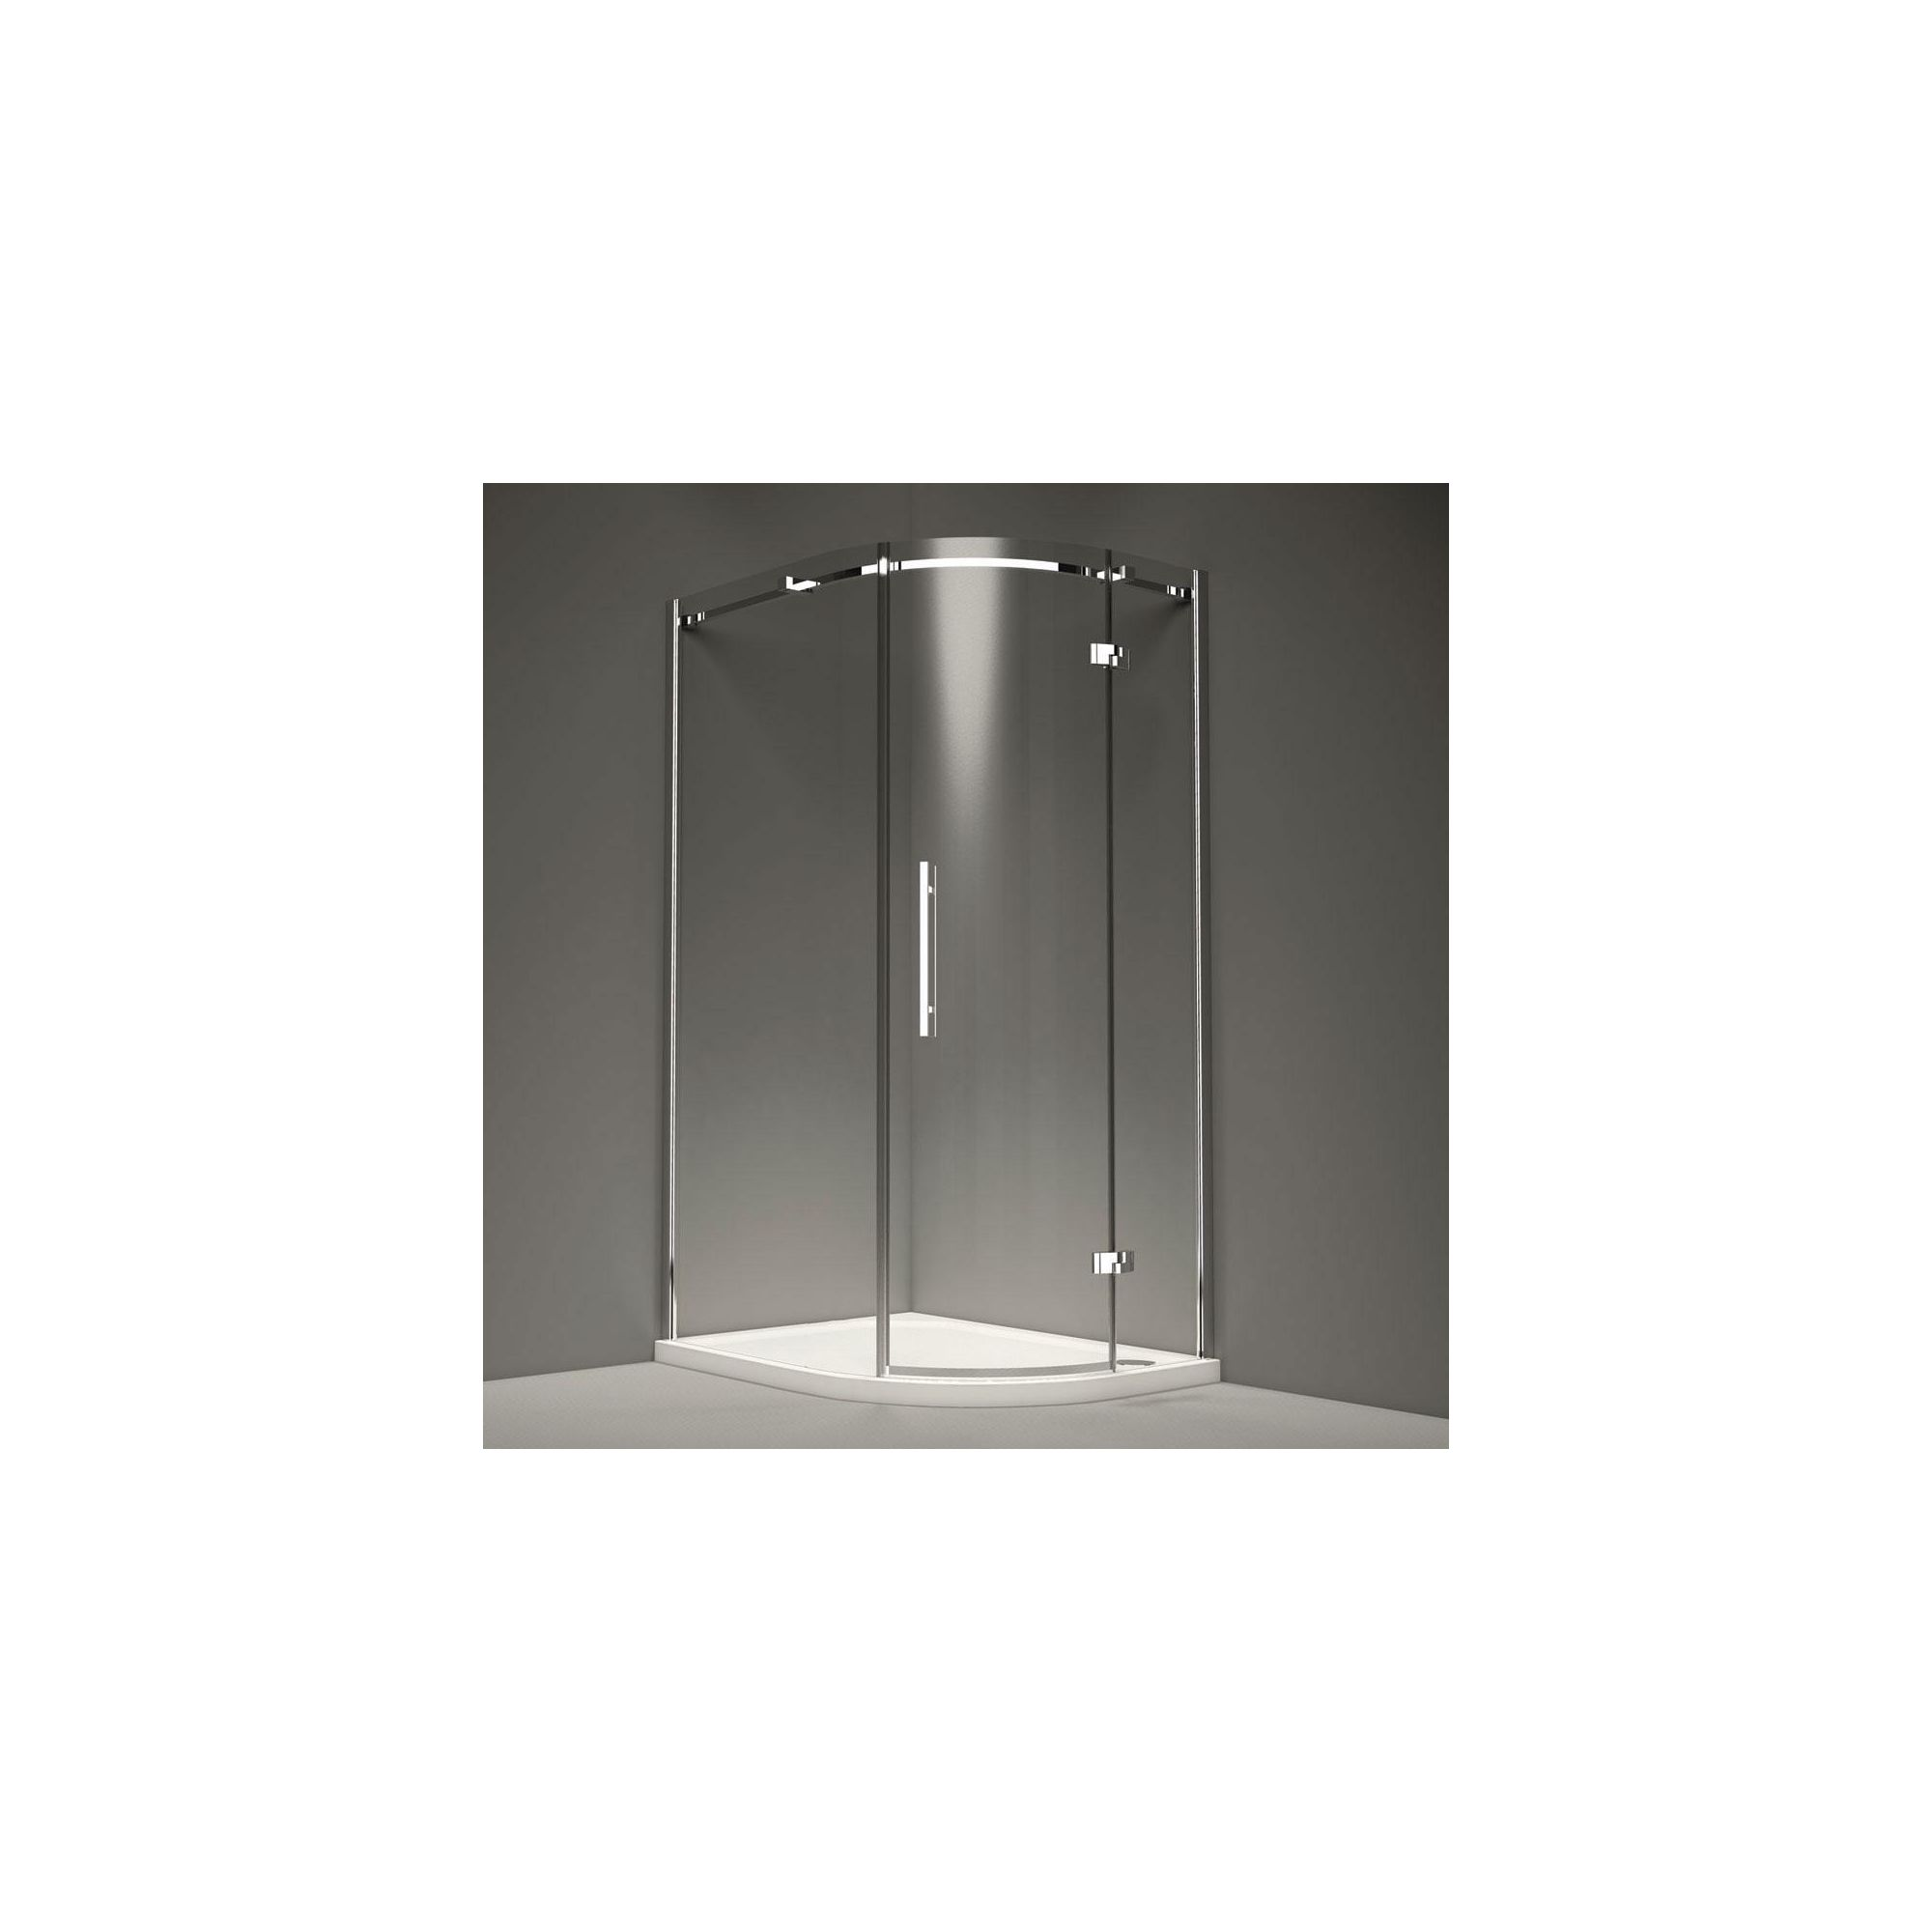 Merlyn Series 9 Single Quadrant Shower Door, 900mm x 900mm, 8mm Glass, Right Handed at Tesco Direct